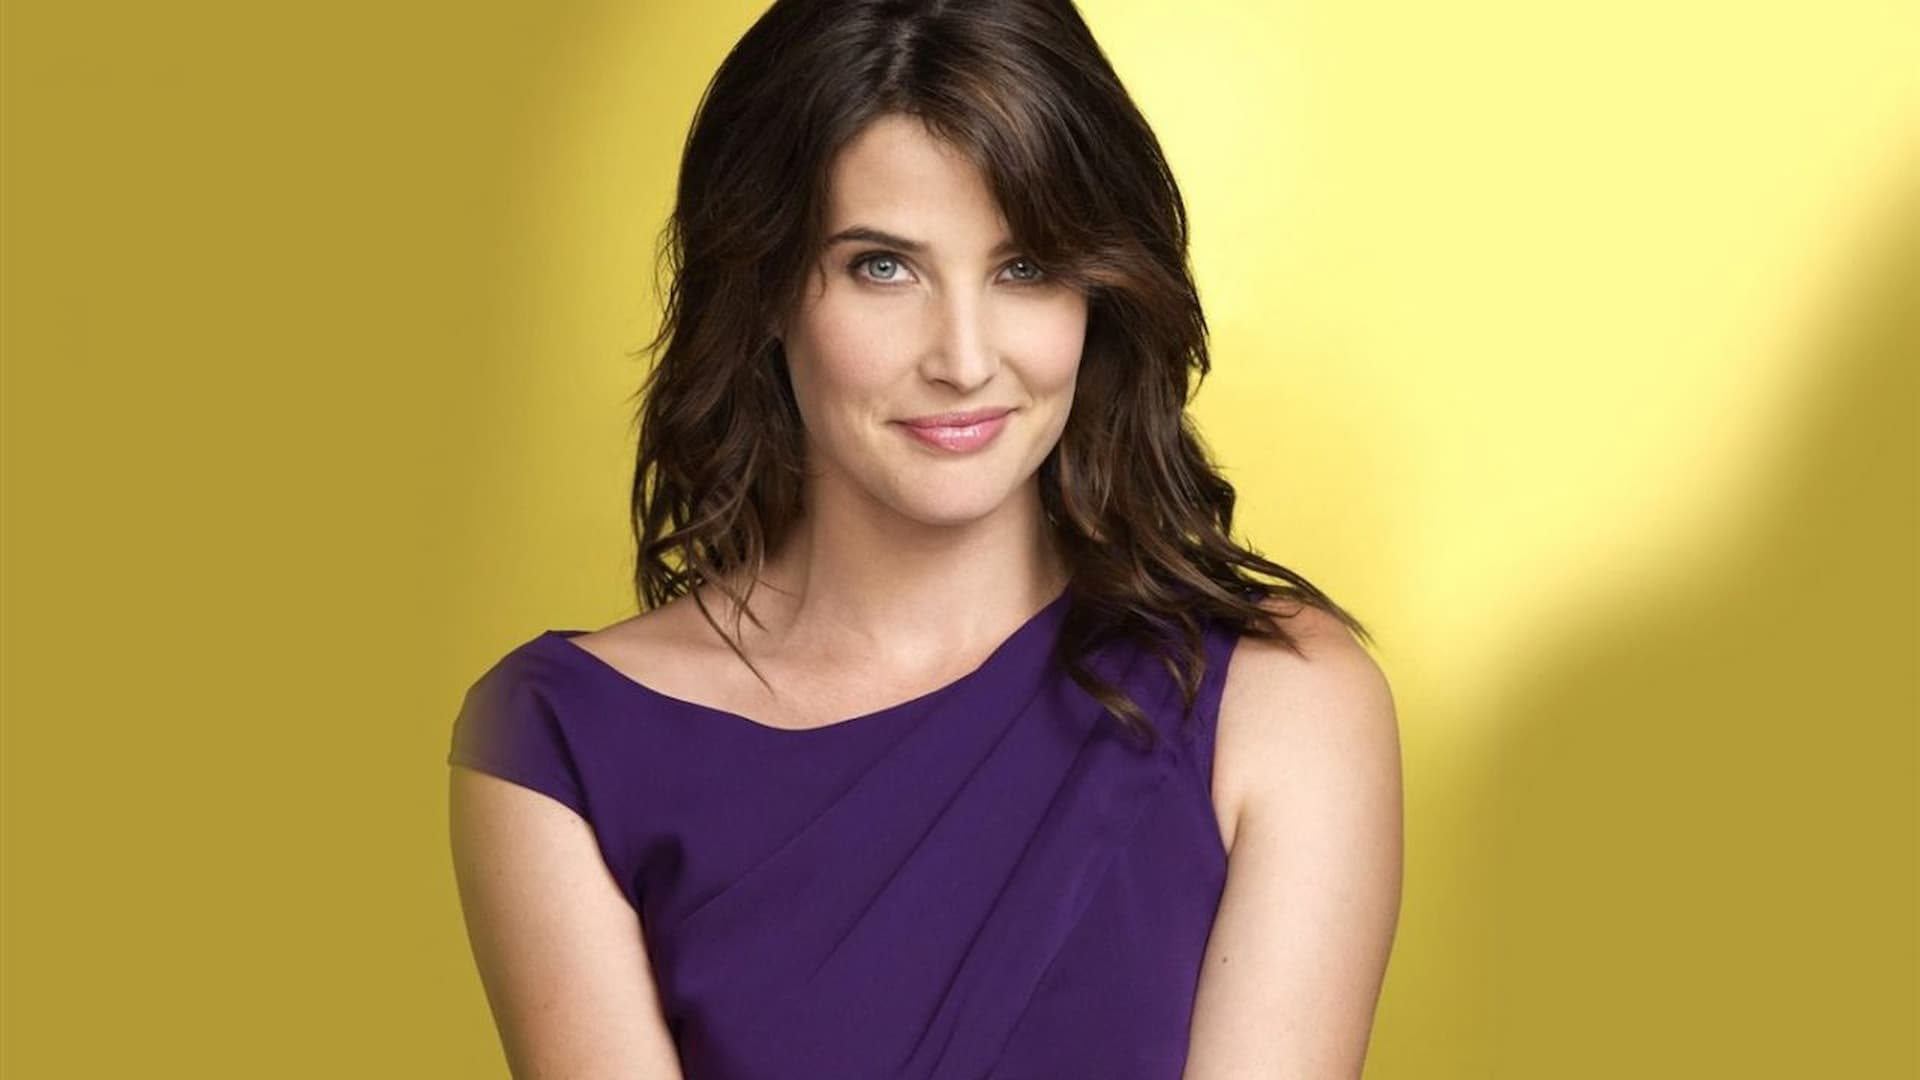 best hollywood actresses, Cobie Smulders age, Cobie Smulders bikini, Cobie Smulders boyfriend, Cobie Smulders bra size, Cobie Smulders breast size, Cobie Smulders dress size, Cobie Smulders eyes color, Cobie Smulders favorite exercise, Cobie Smulders favorite food, Cobie Smulders favorite perfume, Cobie Smulders favorite sport, Cobie Smulders feet size, Cobie Smulders full-body statistics, Cobie Smulders height, Cobie Smulders instagram, Cobie Smulders Measurements, Cobie Smulders movies, Cobie Smulders net worth, Cobie Smulders personal info, Cobie Smulders shoe, Cobie Smulders wallpapers, Cobie Smulders weight, famous hollywood stars, female hollywood stars, hollywood celebrities, hot hollywood actresses, hottest canadian actresses, hottest celebrities, most famous canadian actresses, most famous hollywood actresses, top female hollywood stars